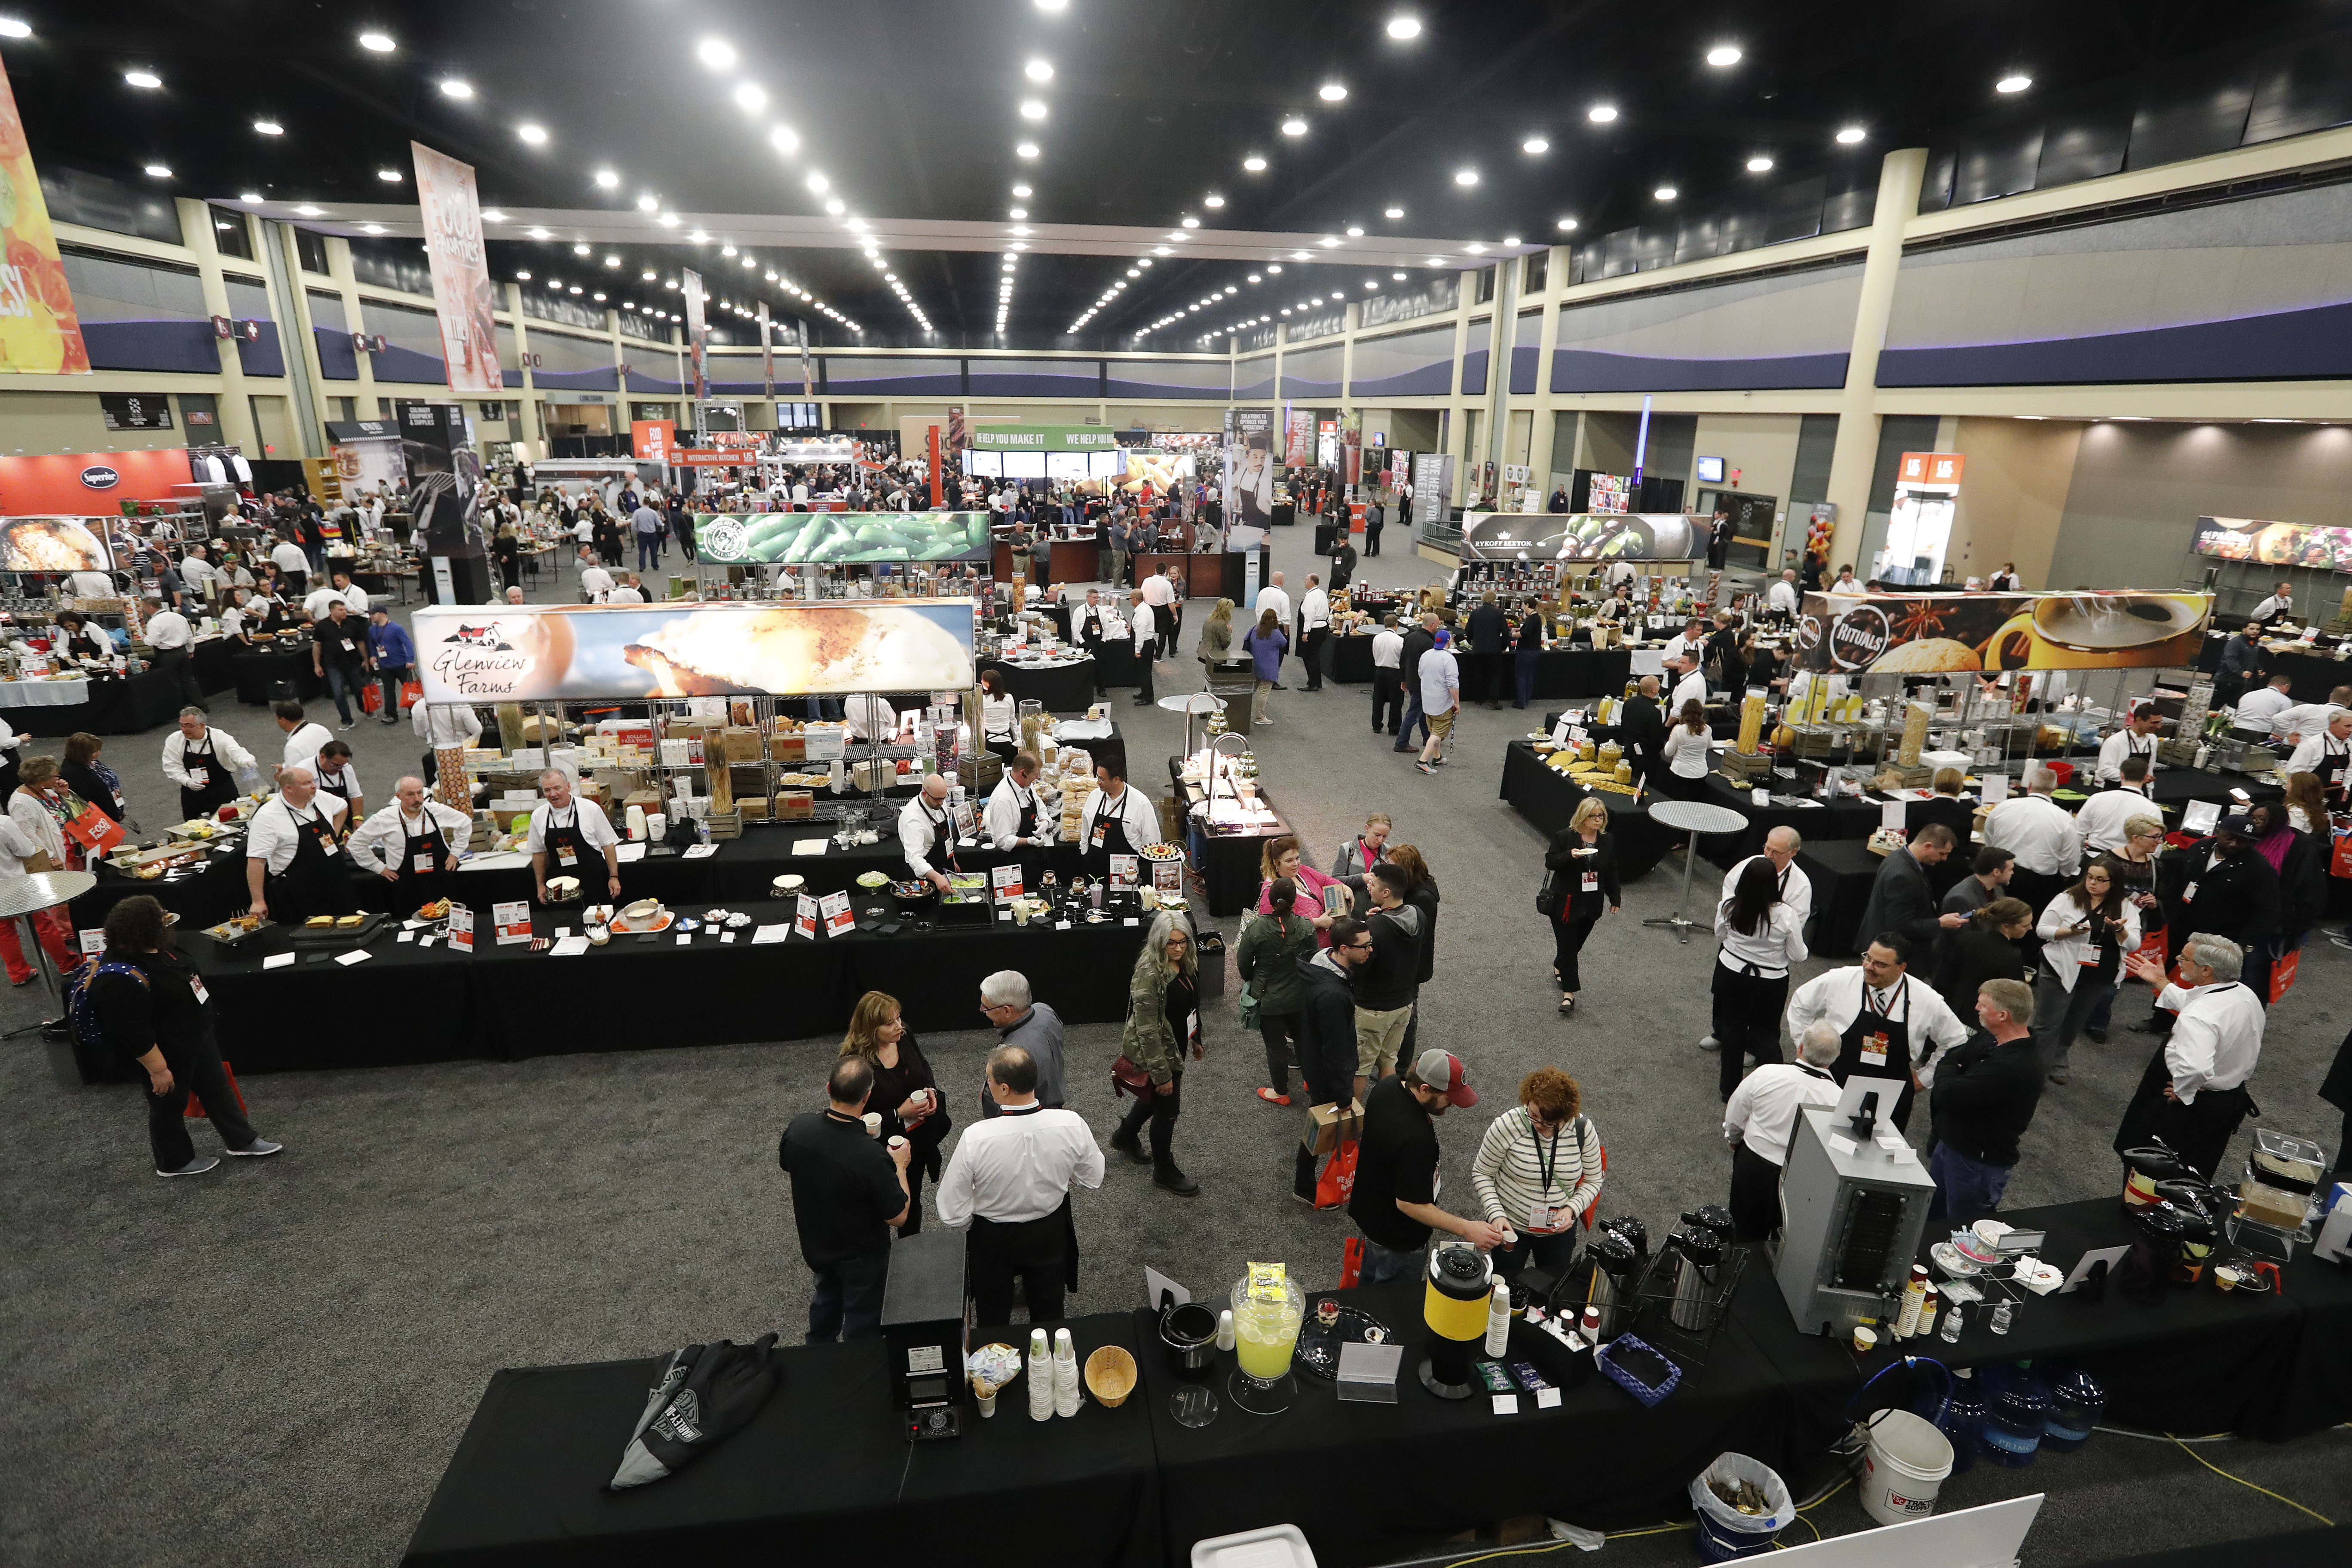 People pack the Buffalo Niagara Convention Center exhibit hall for a food show at the Buffalo Niagara Convention Center. Despite efforts to improve exhibit space, it's still considered too small and dated for many events. (Mark Mulville/Buffalo News)